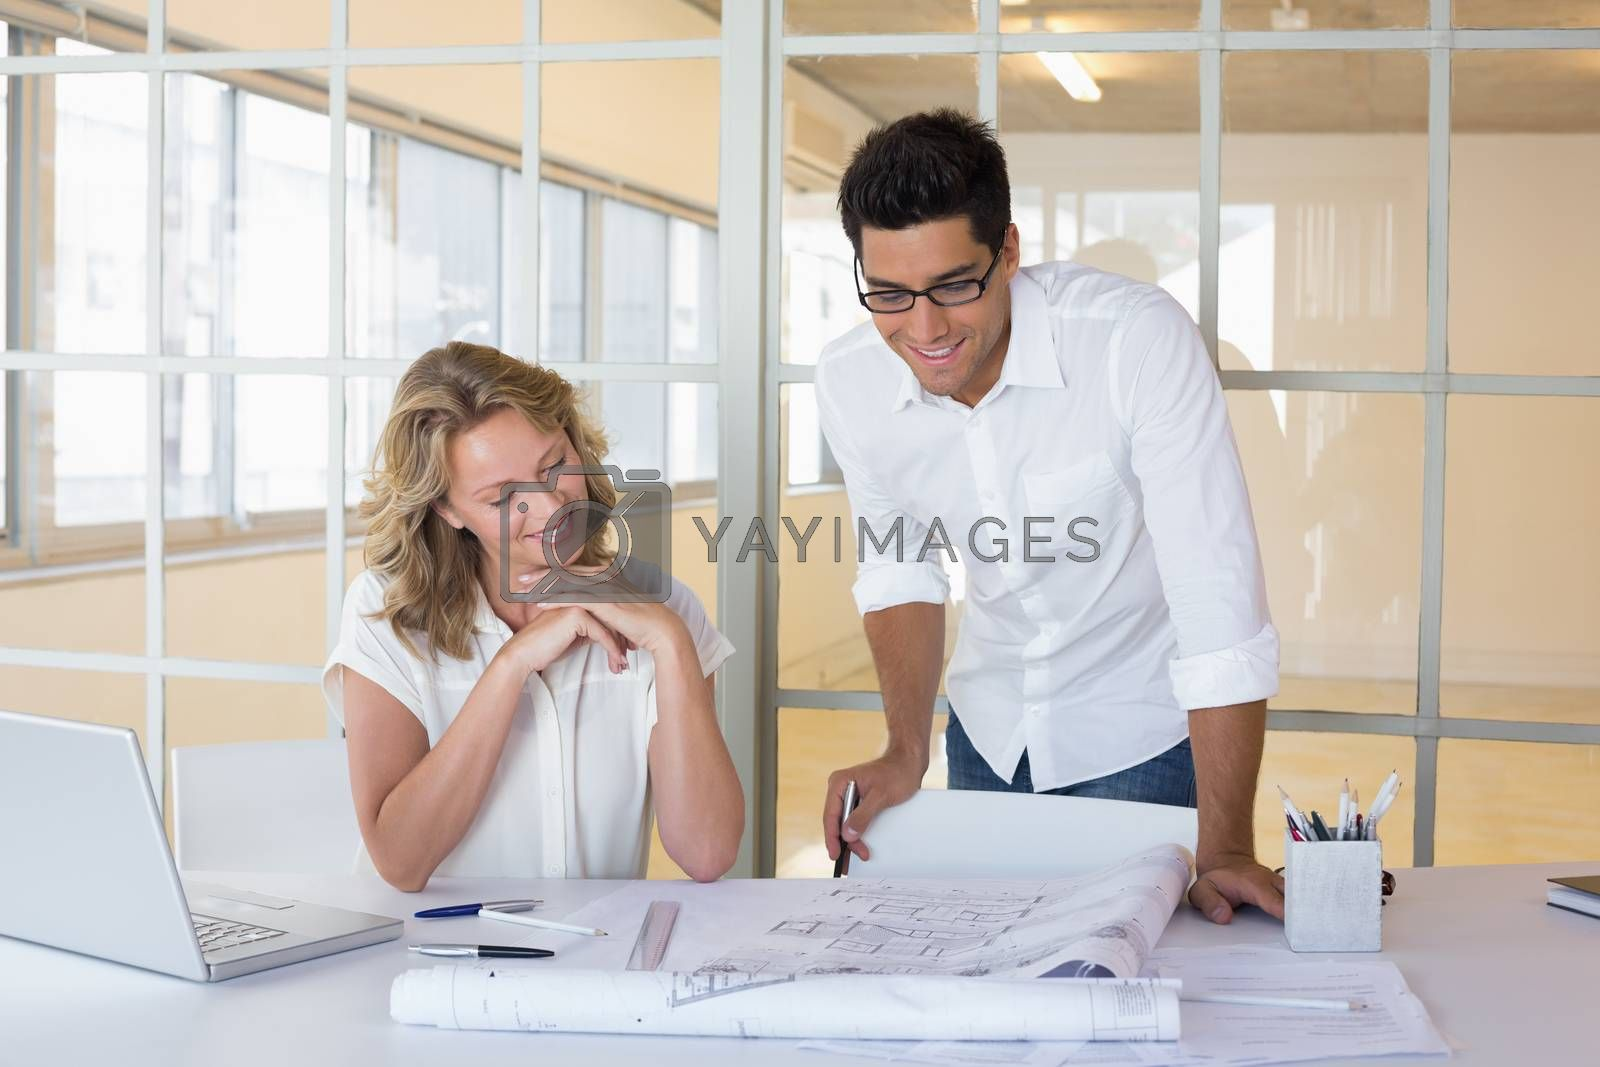 Royalty free image of Casual architecture team working together by Wavebreakmedia